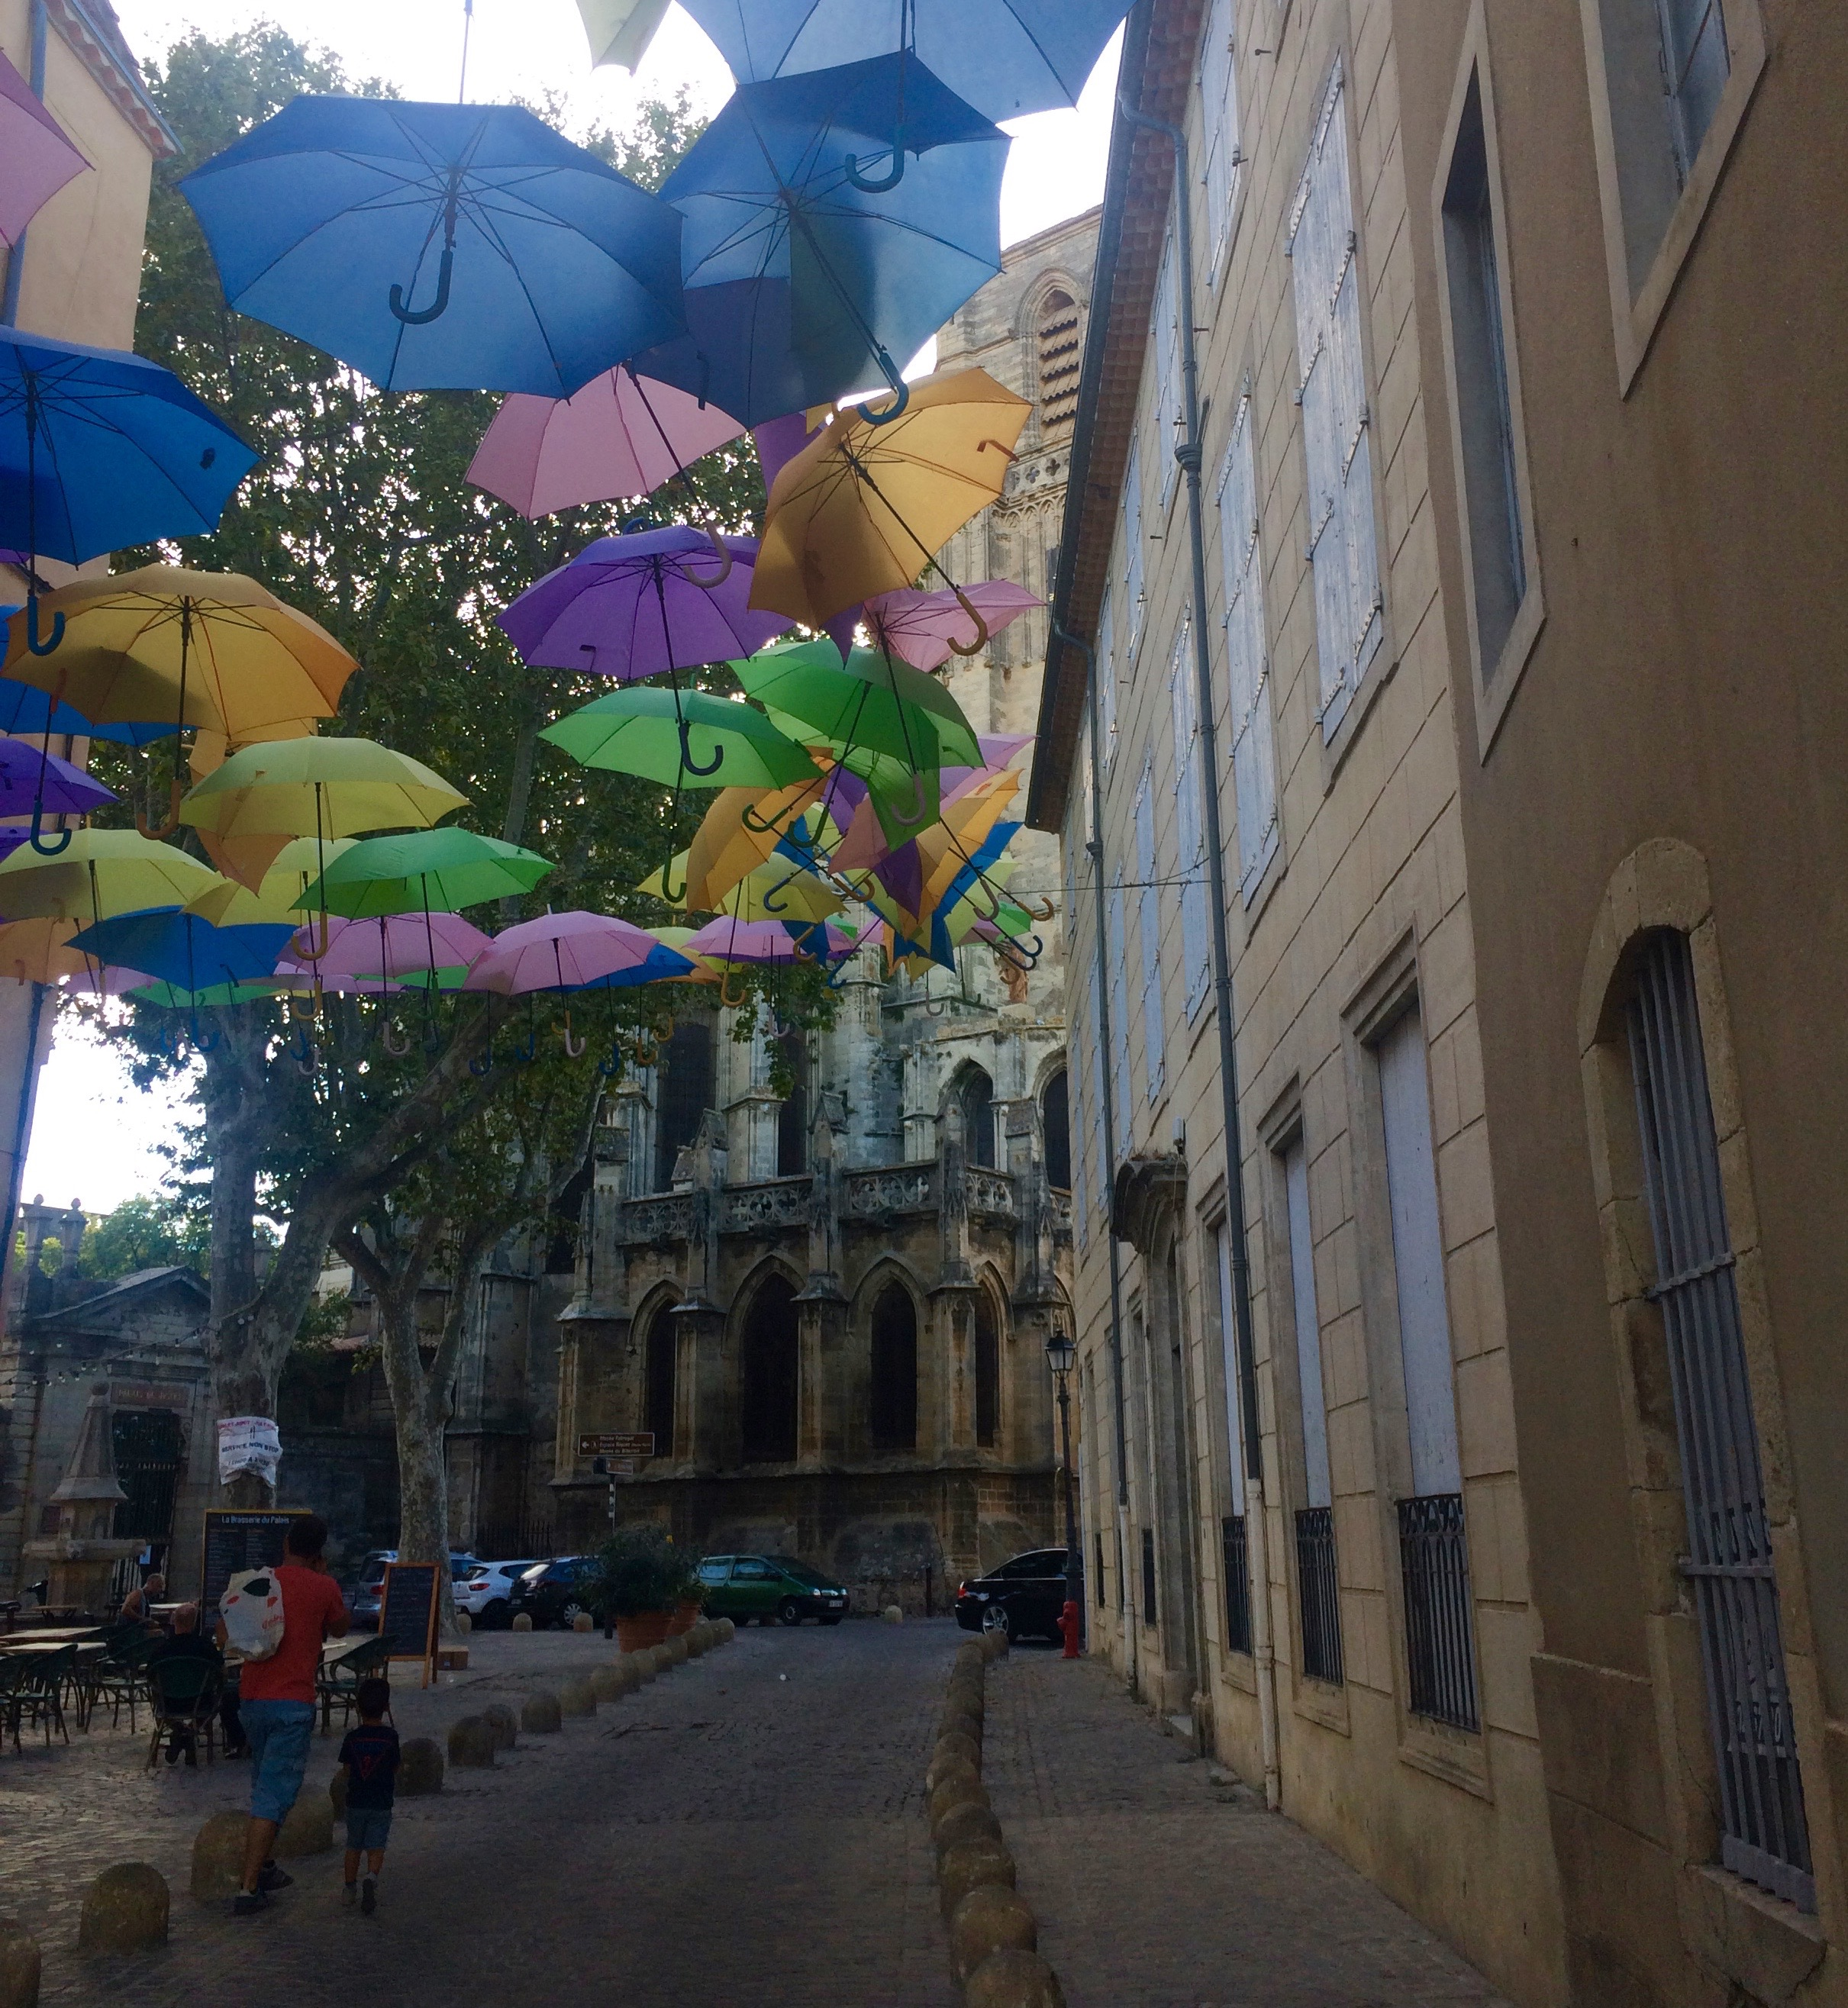 Bezier, France,where the pace is slower to compensate for the heat and to give life a personal touch.